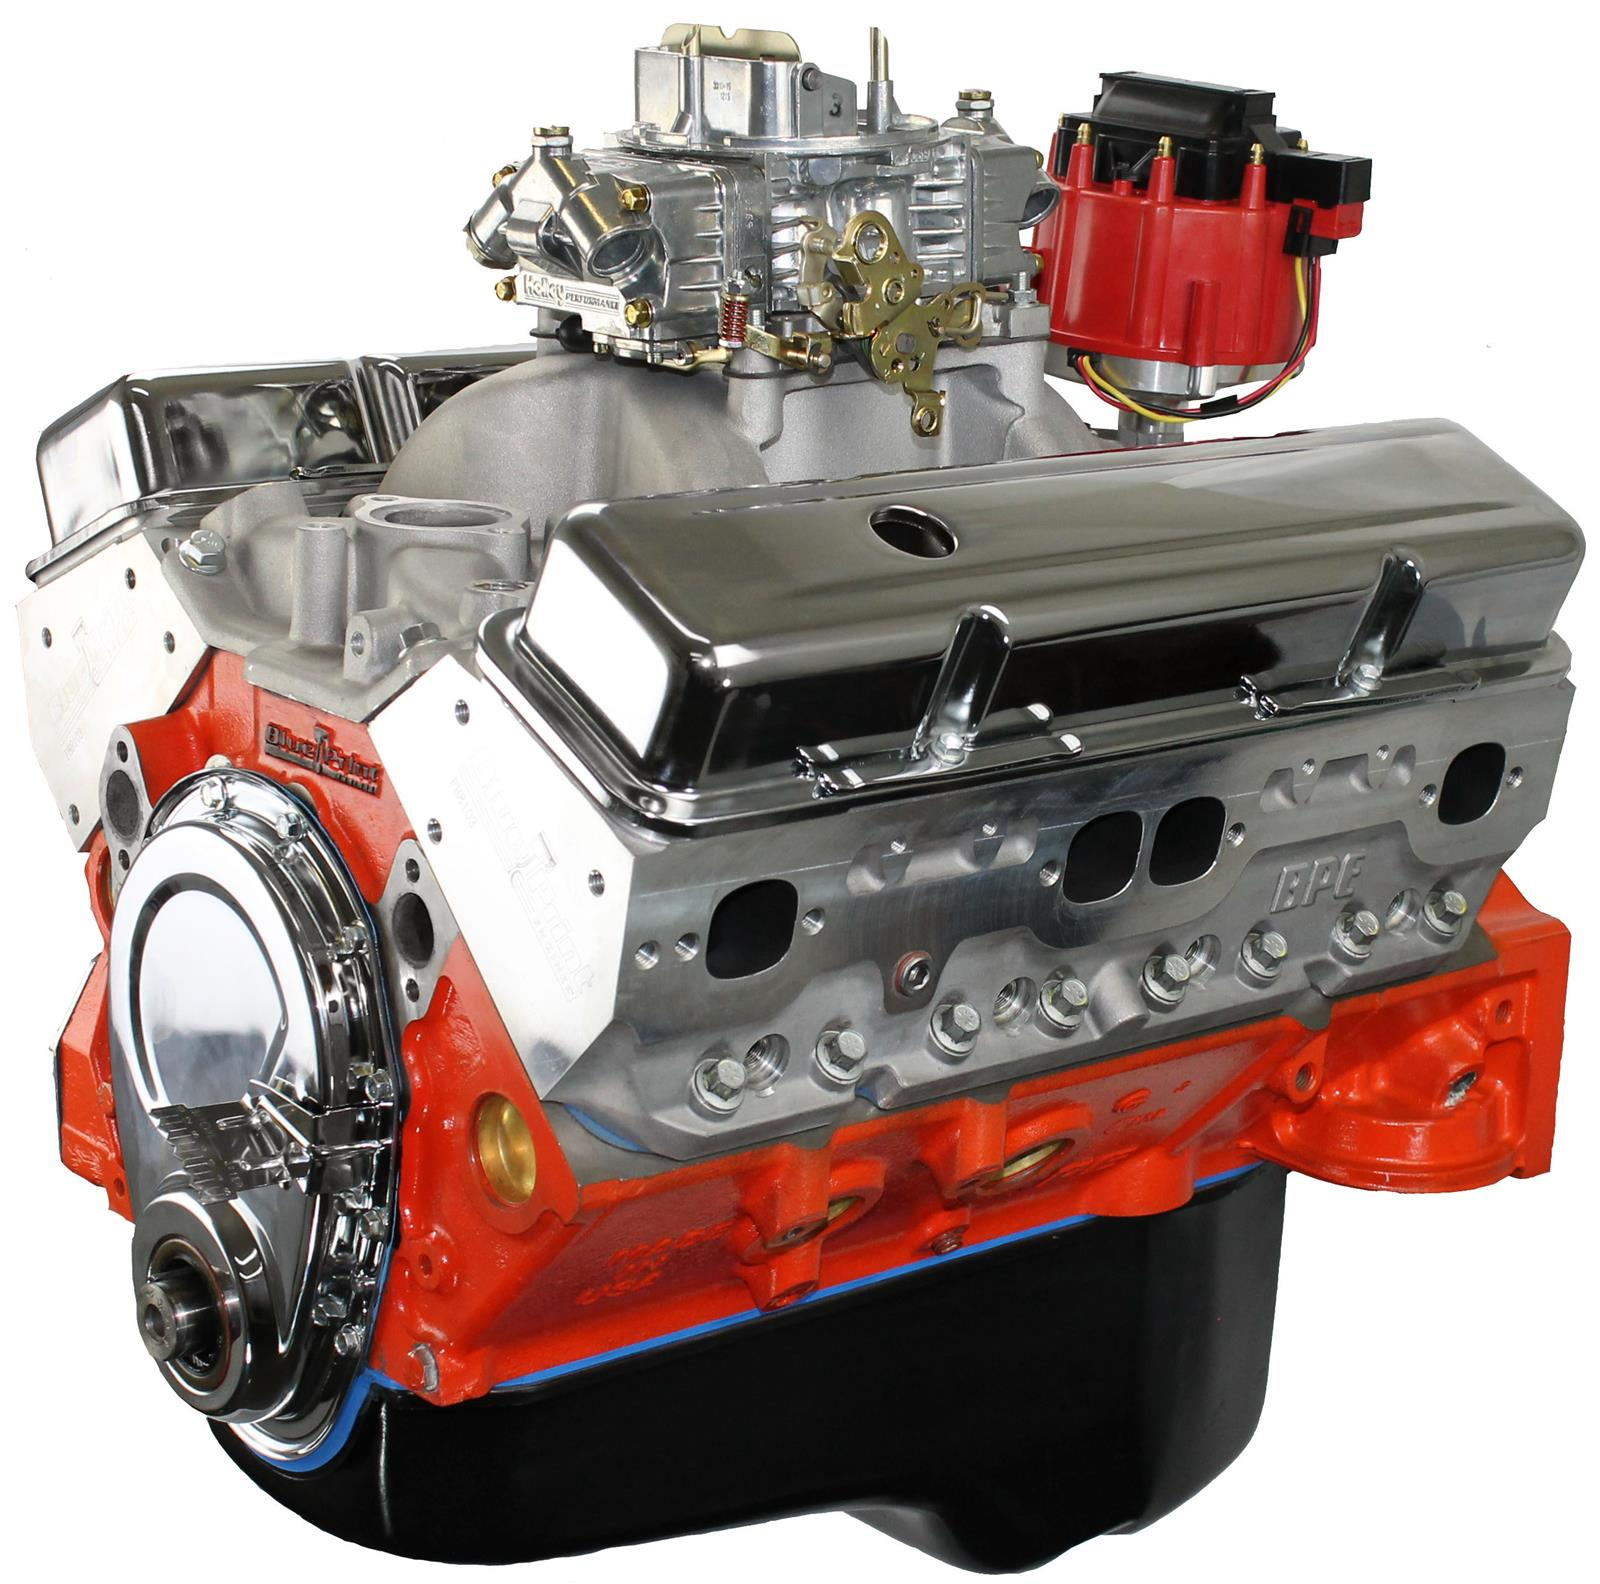 blueprint engines pro series chevy 454 c i d 575hp dressed crate engine ebay Wire Grommets Rubber Harness Trimming 7.3 Powerstroke Engine Wiring Harness